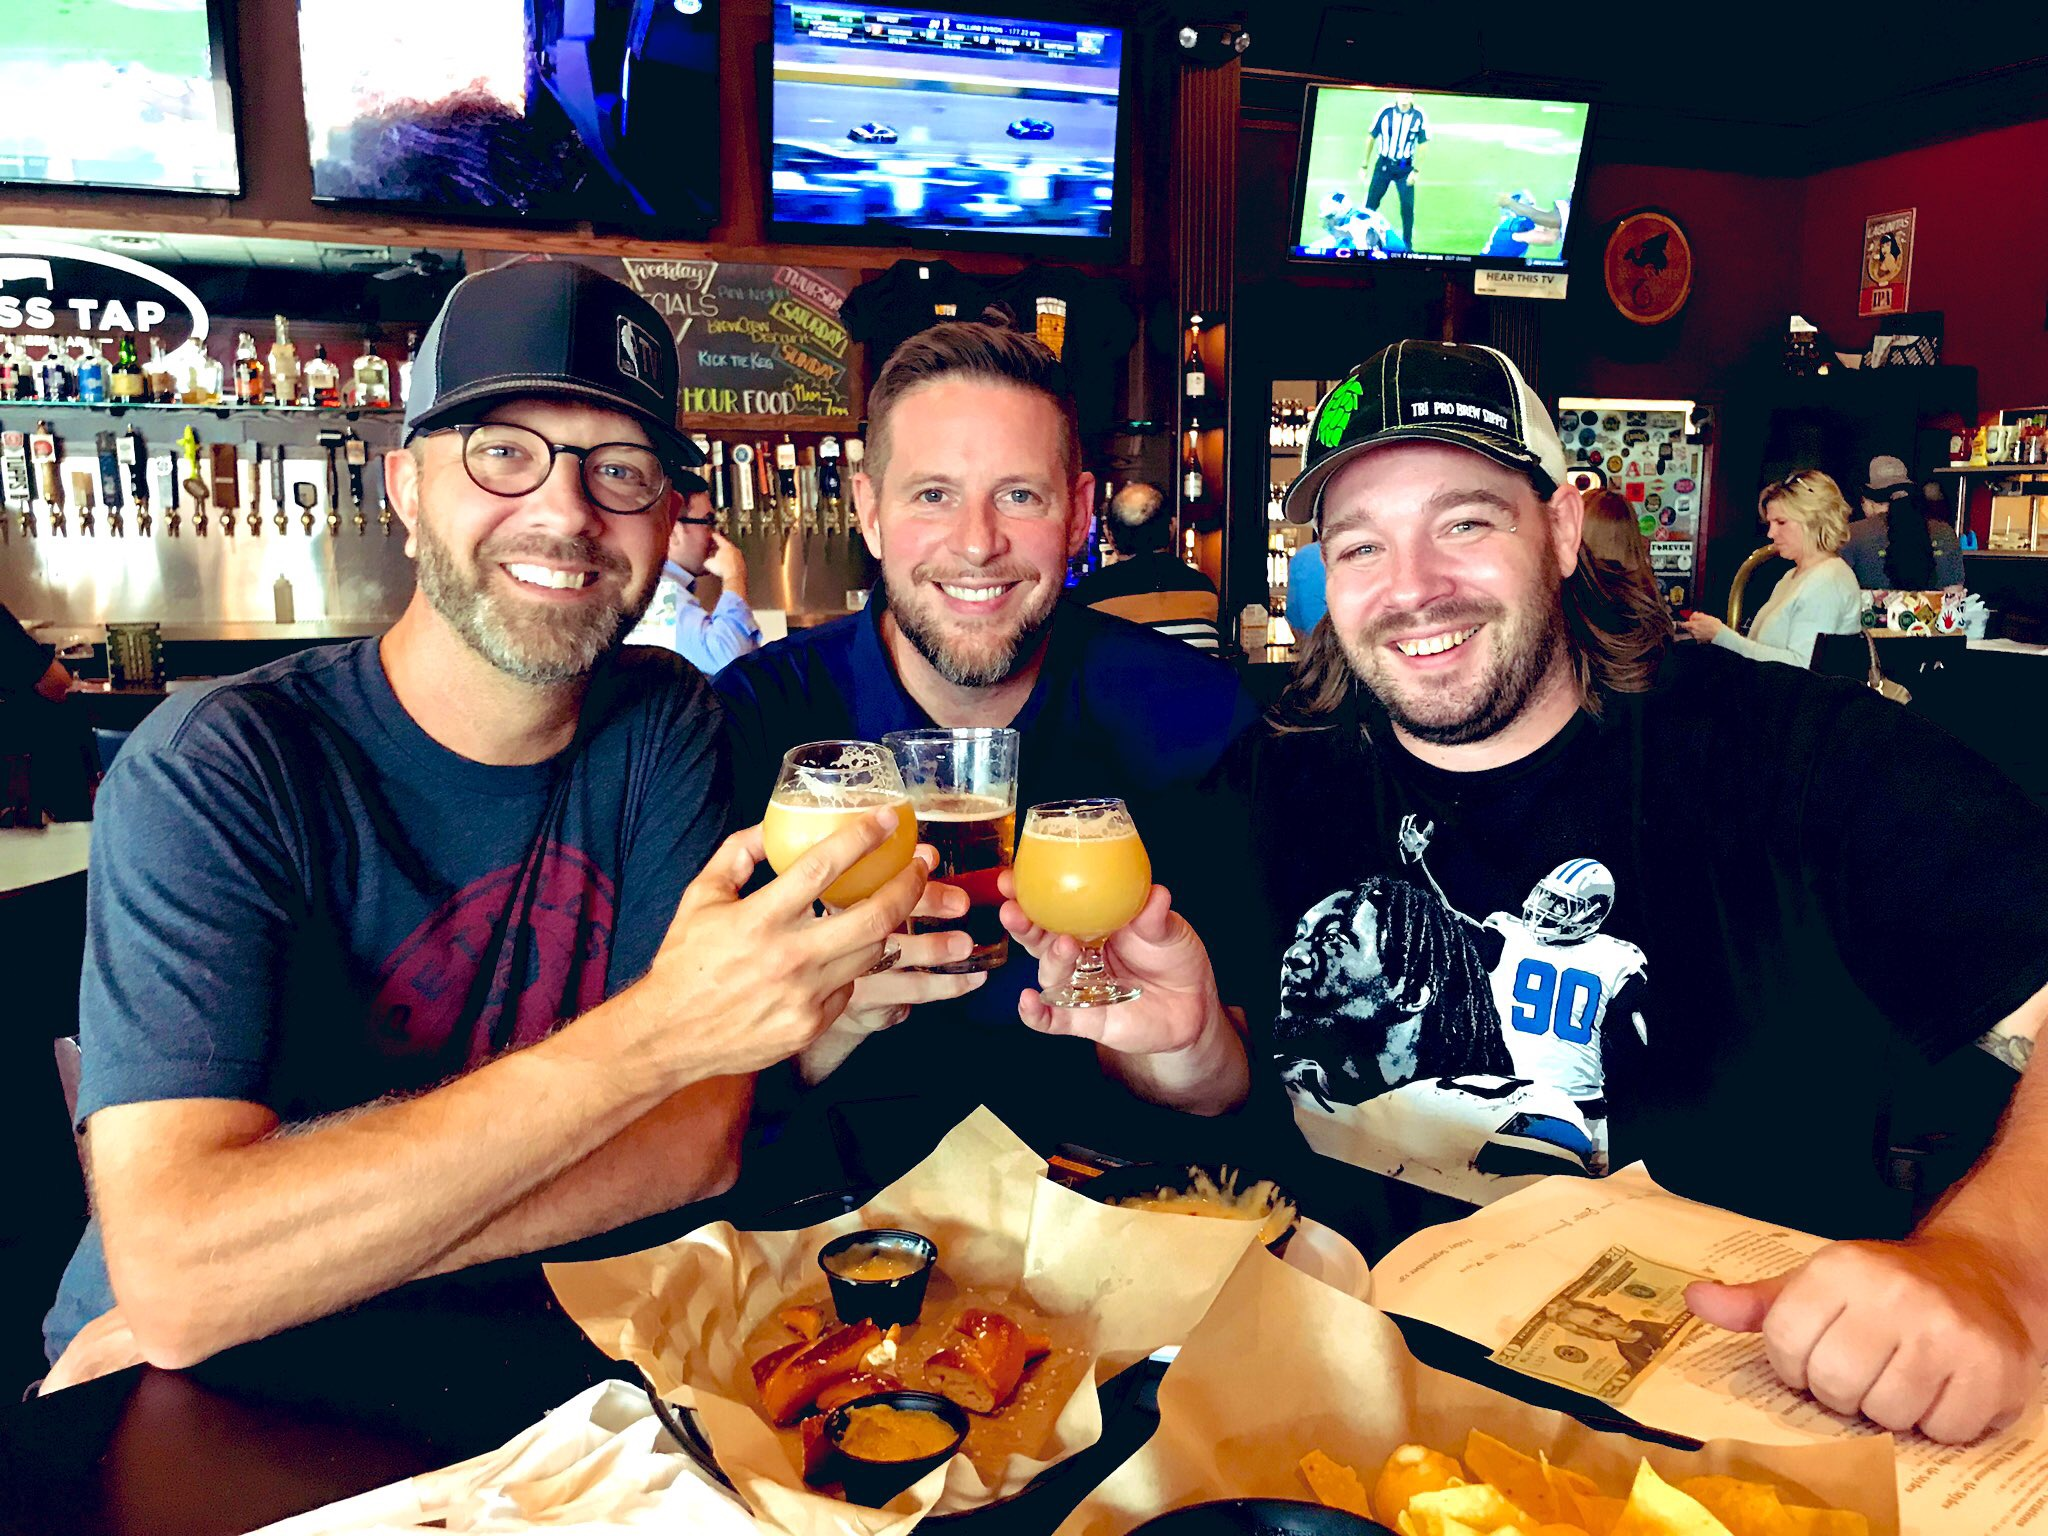 Sports Radio Hosts Ben And Skin Reveal Plans For New Brewery In The Dallas Suburbs